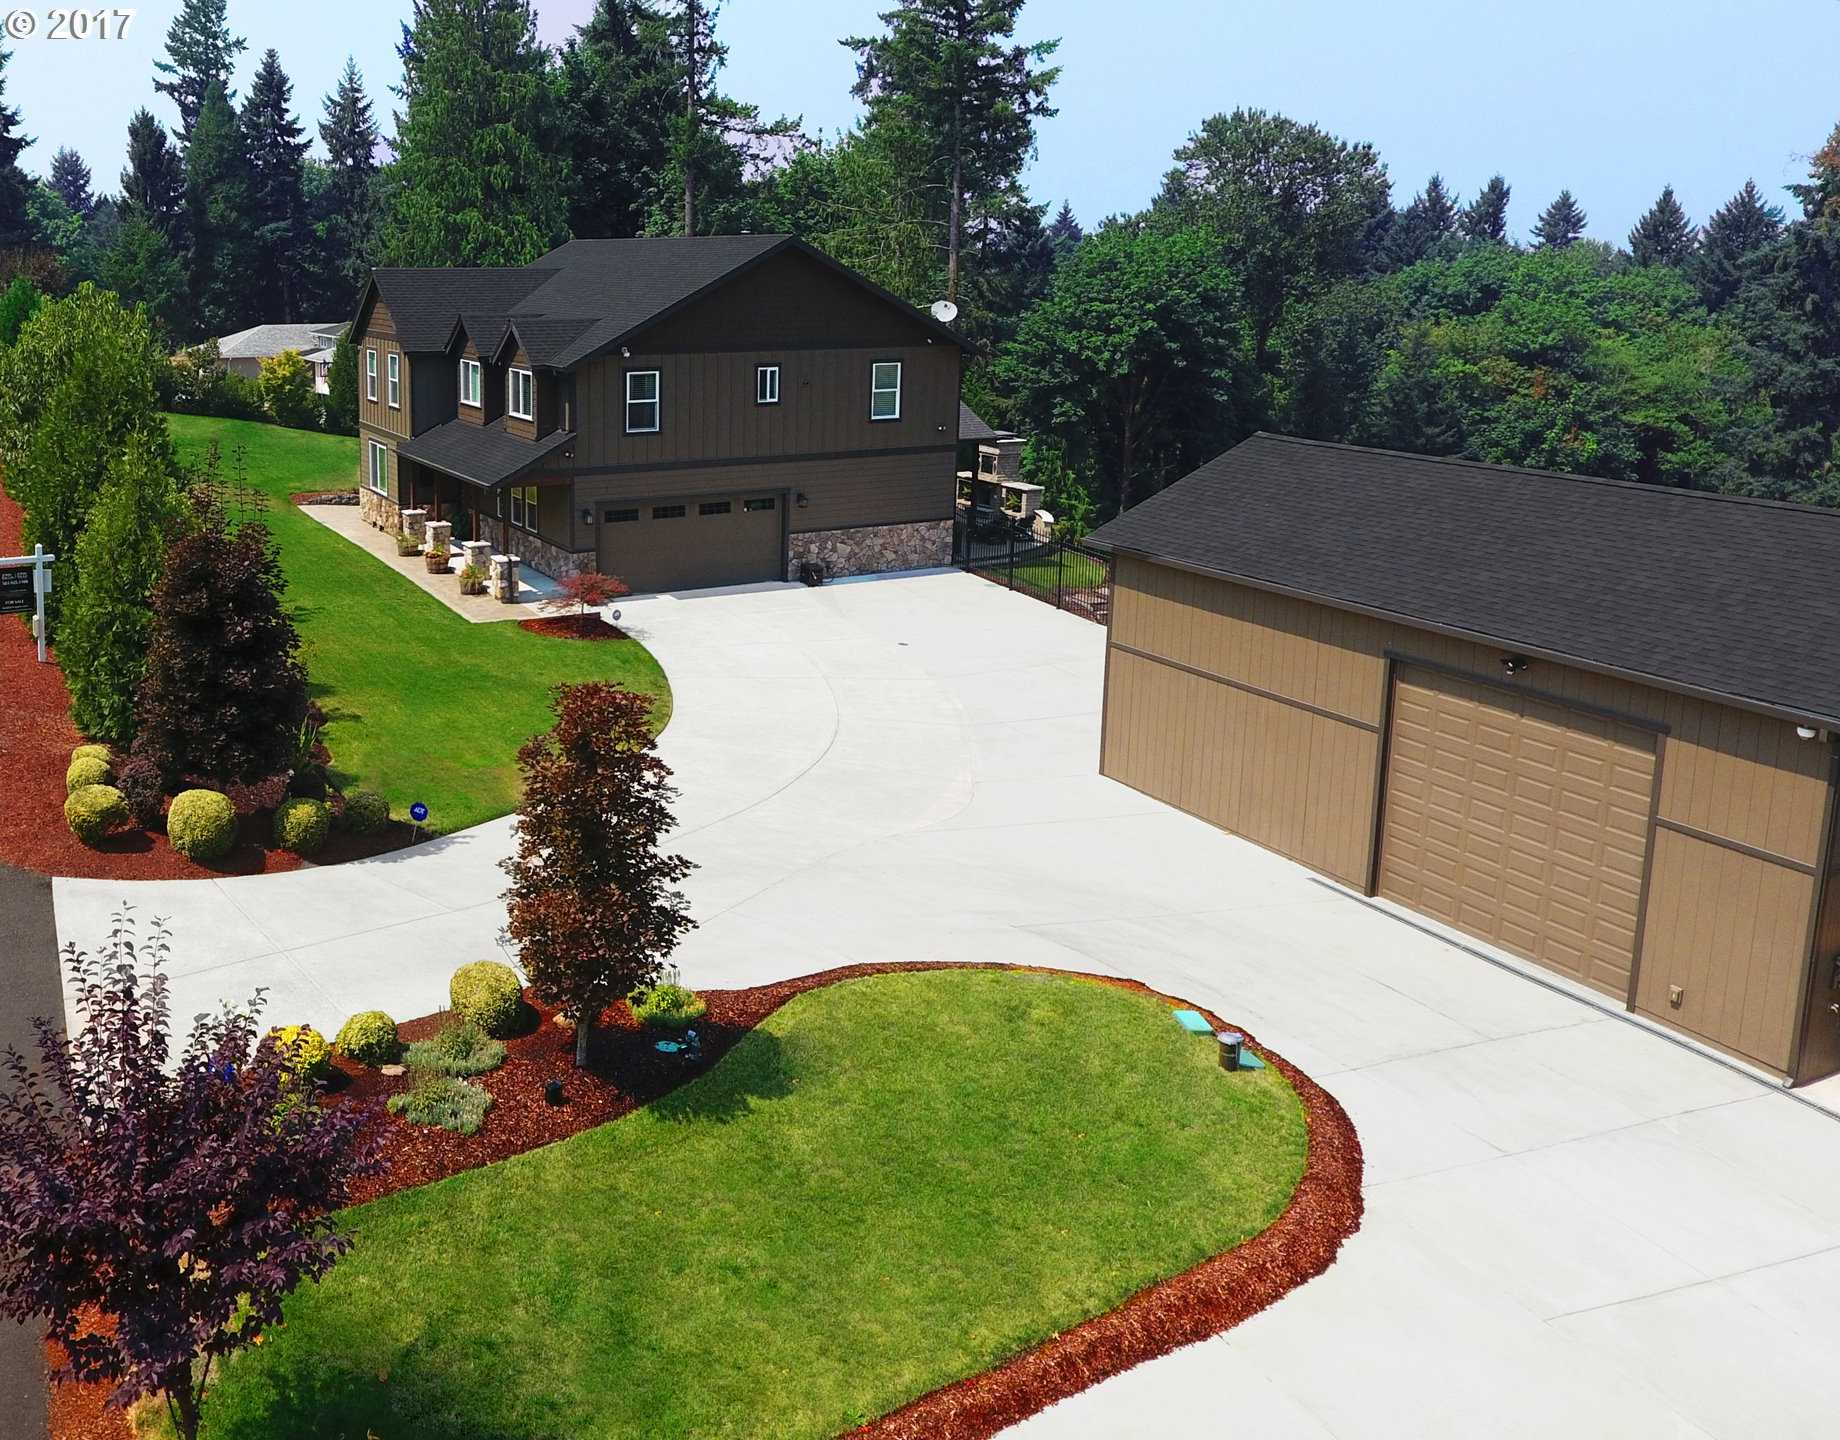 $1,050,000 - 4Br/3Ba -  for Sale in Tualatin